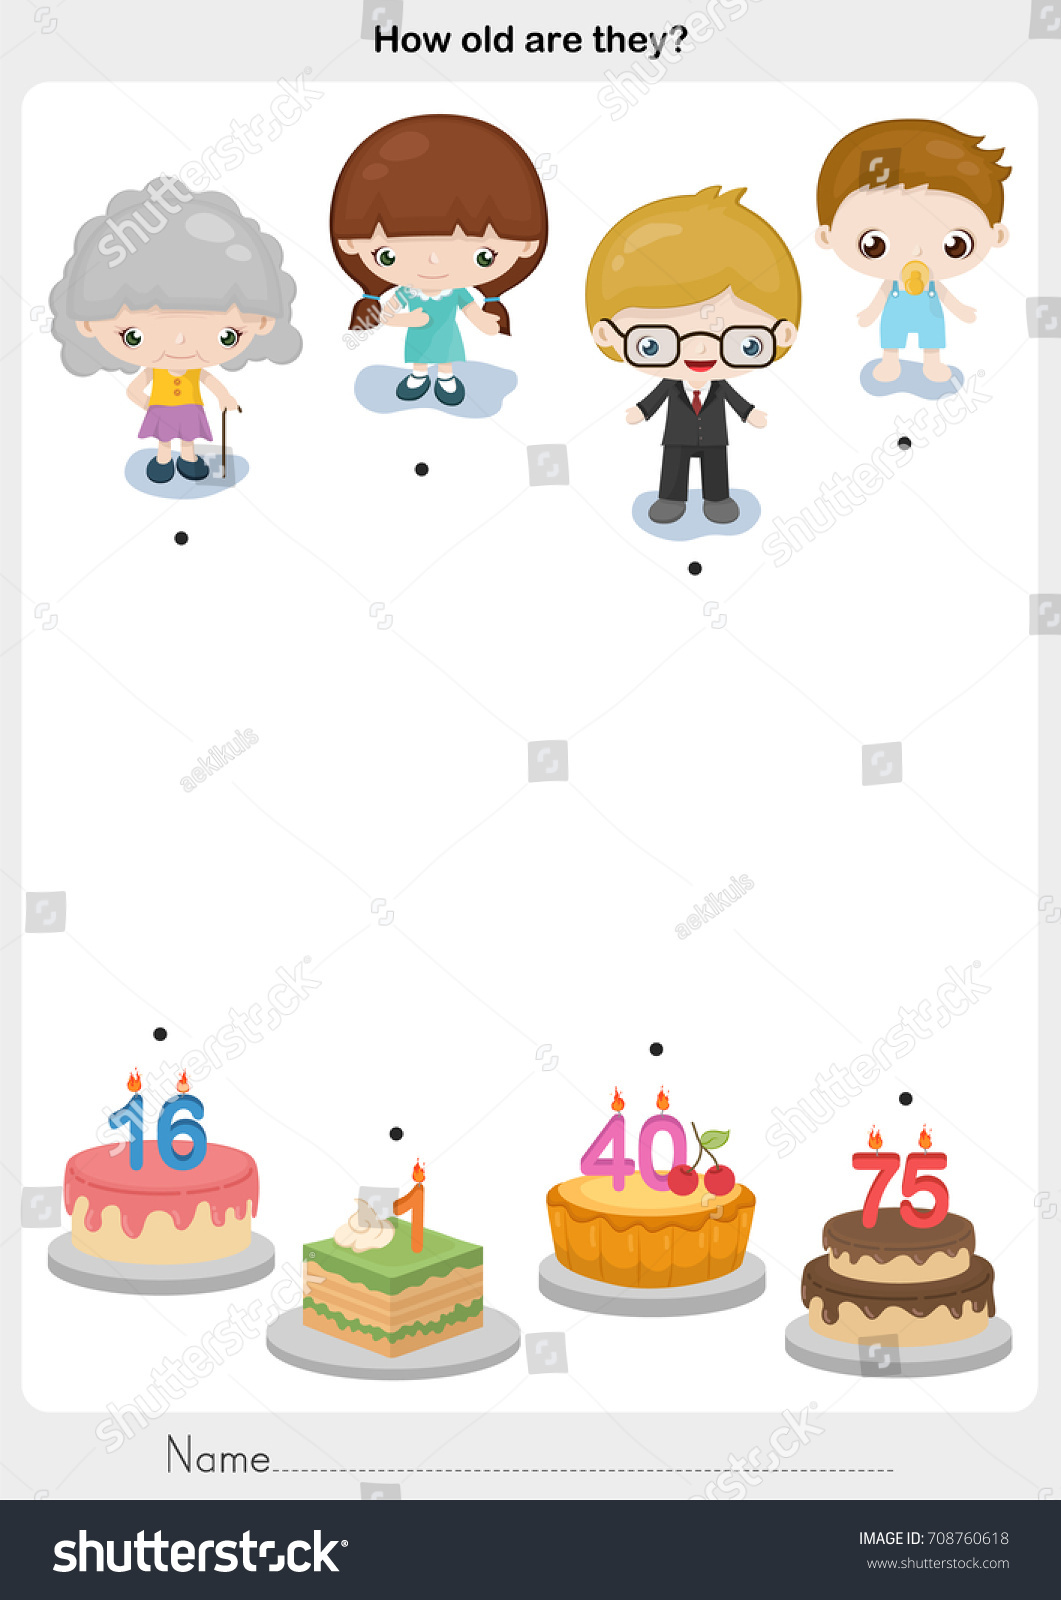 worksheet Cake Decorating Worksheets matching people birthday cake worksheet education stock vector 2018 and for education